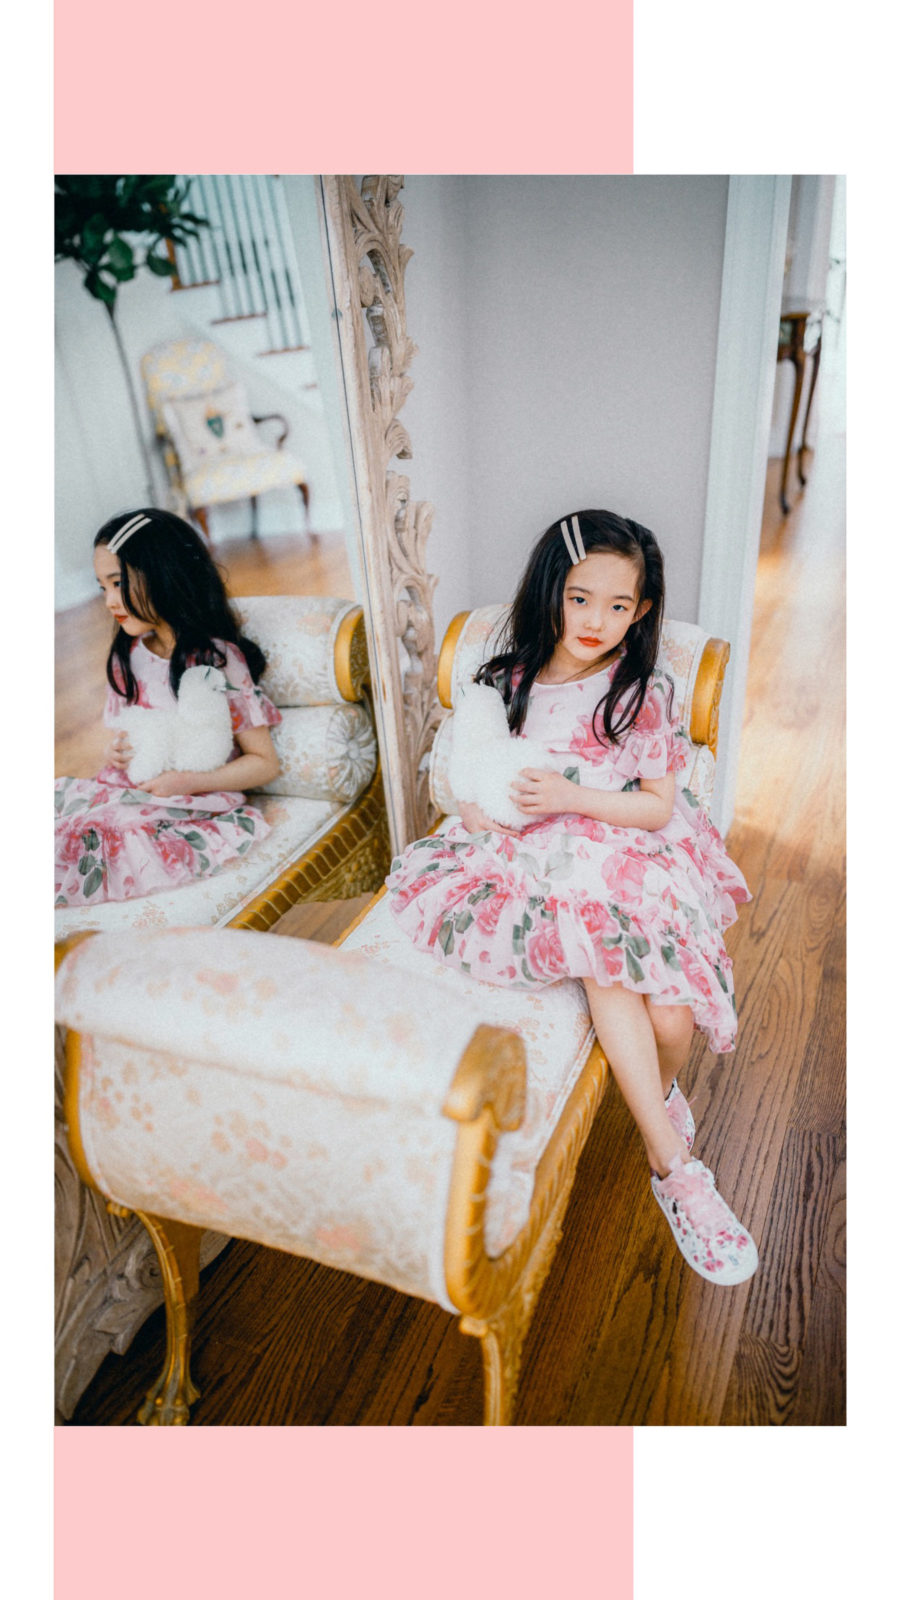 kids fashion trends for spring 2019 - kids floral dresses, kids fashion trends, melijoe kids clothing // Notjessfashion.com